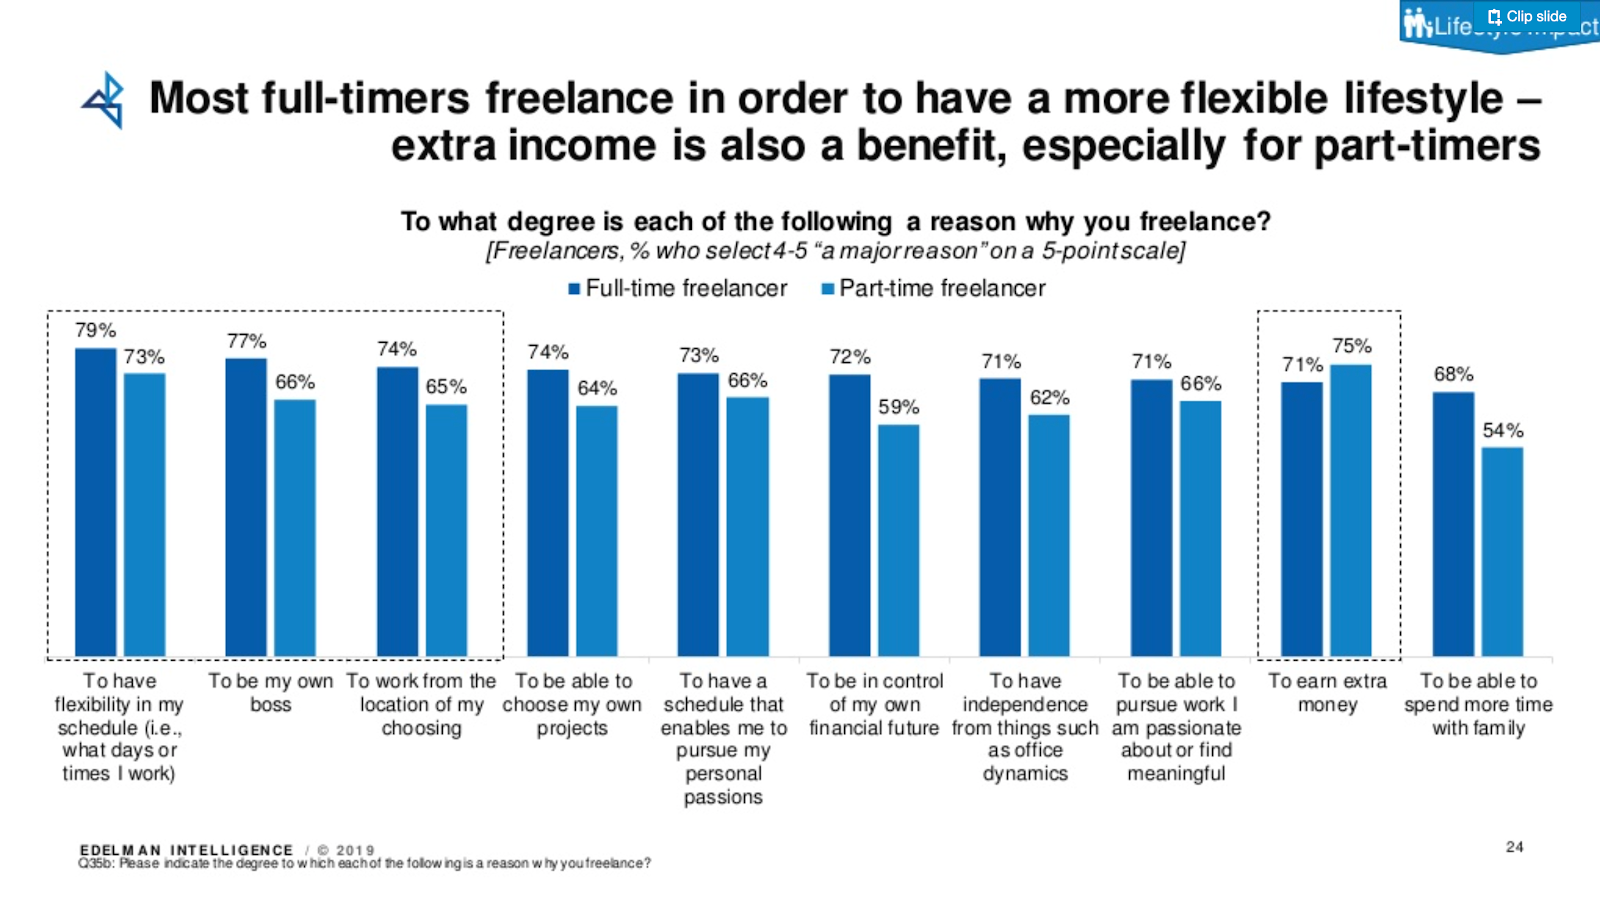 Why people choose to be a freelancer